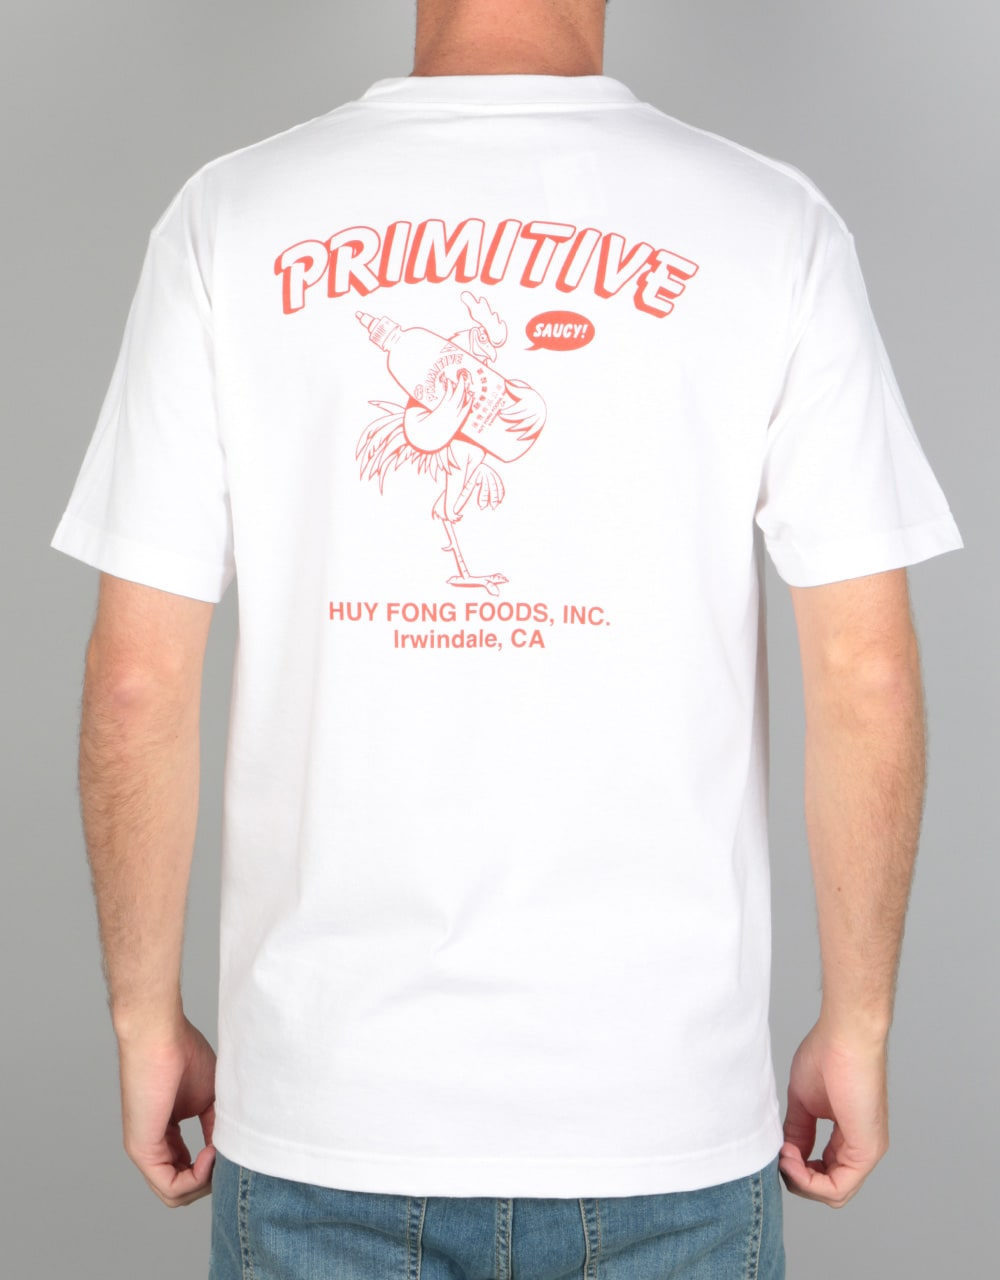 7e7edaf5 Primitive x Huy Fong Saucy T-Shirt - White | Skate Clothing | Mens  Skateboard Clothes | Route One